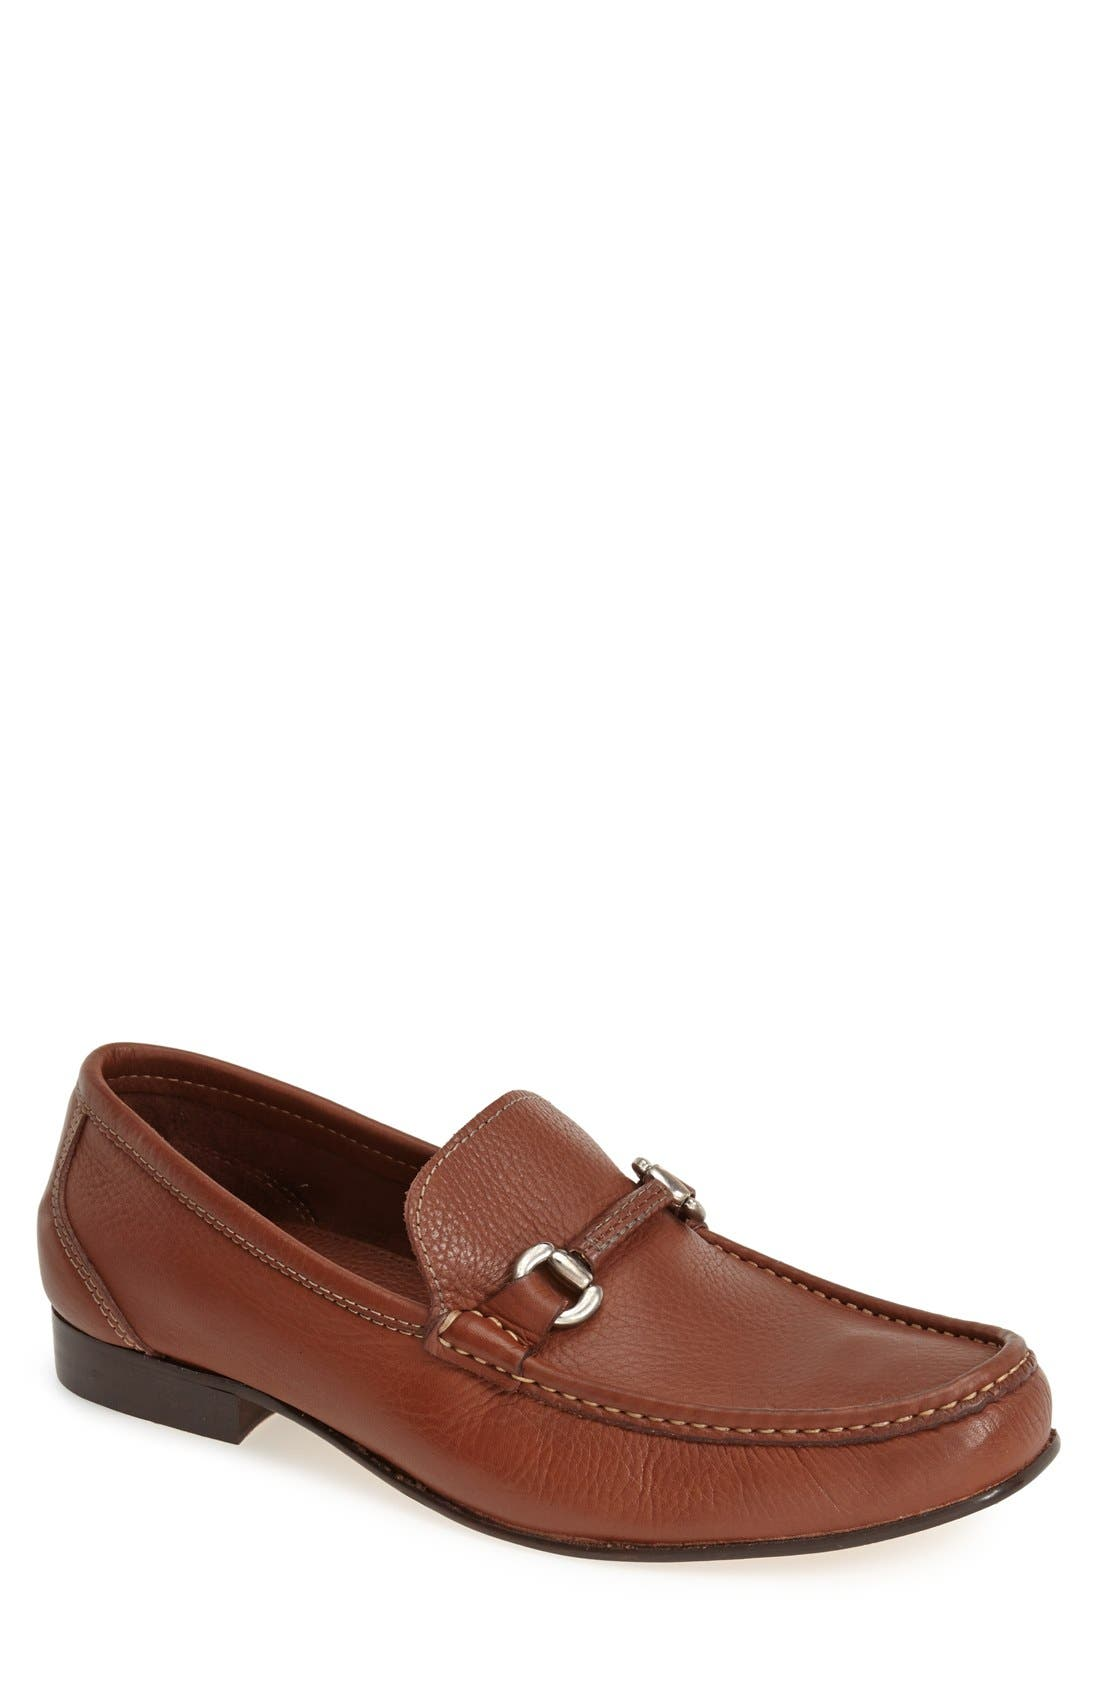 'San Remo' Leather Bit Loafer,                             Main thumbnail 1, color,                             BROWN